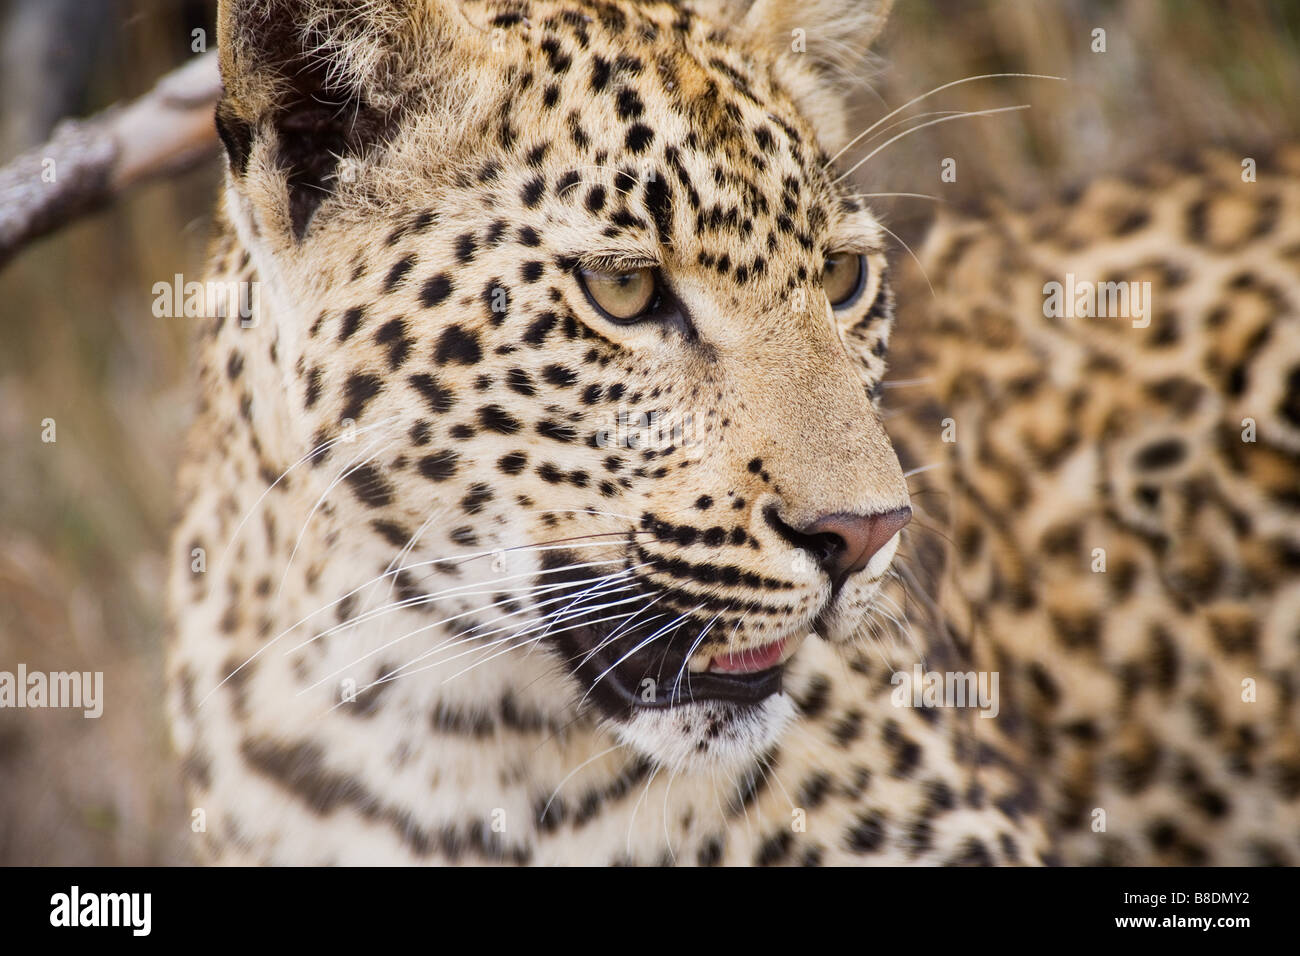 Leopard - Stock Image